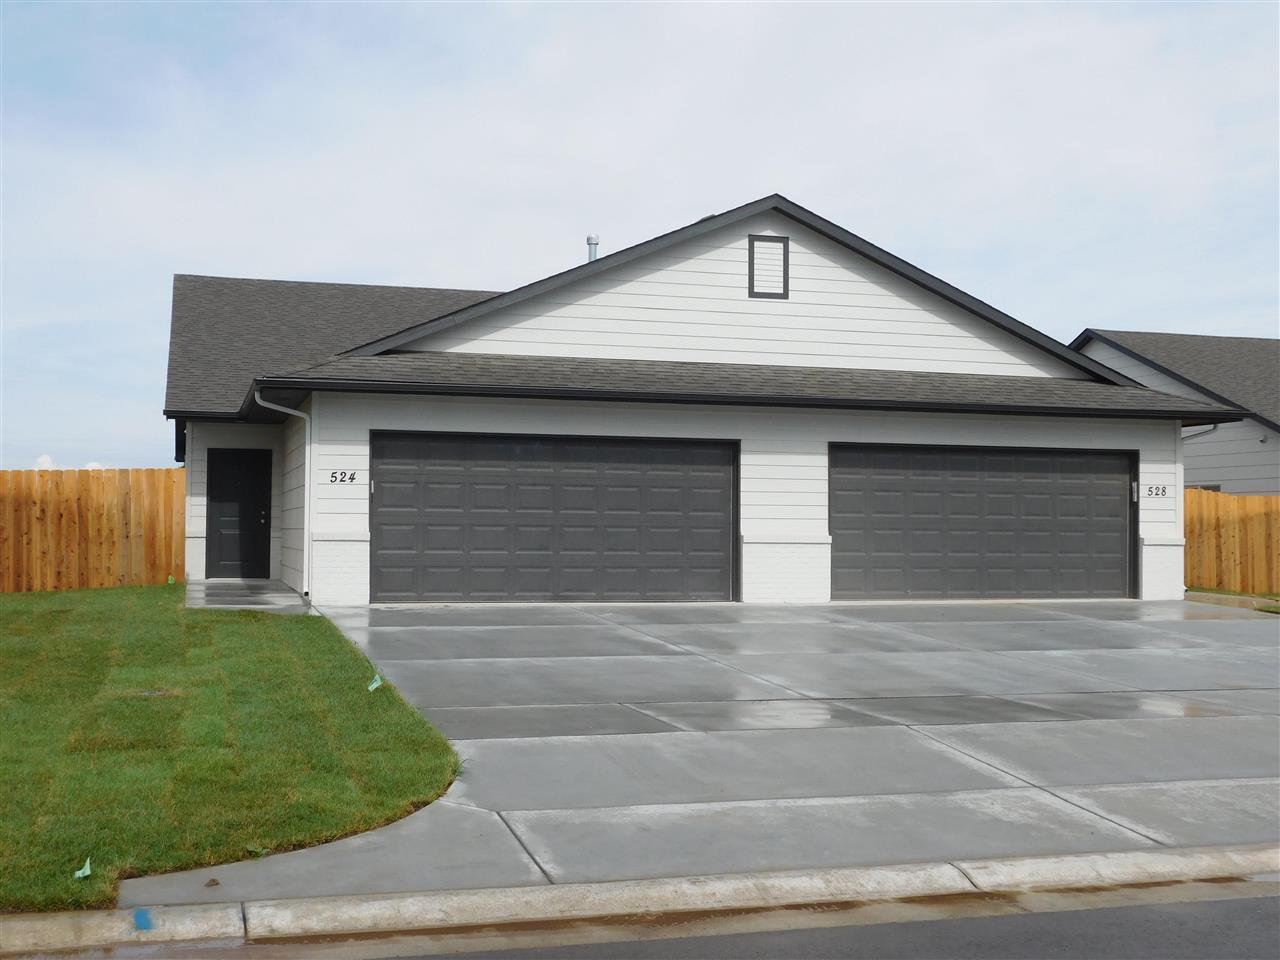 New 3 bed, 2 bath 2 car garage with White cabinetry and granite in kitchen and bath.  Luxury vinyl f